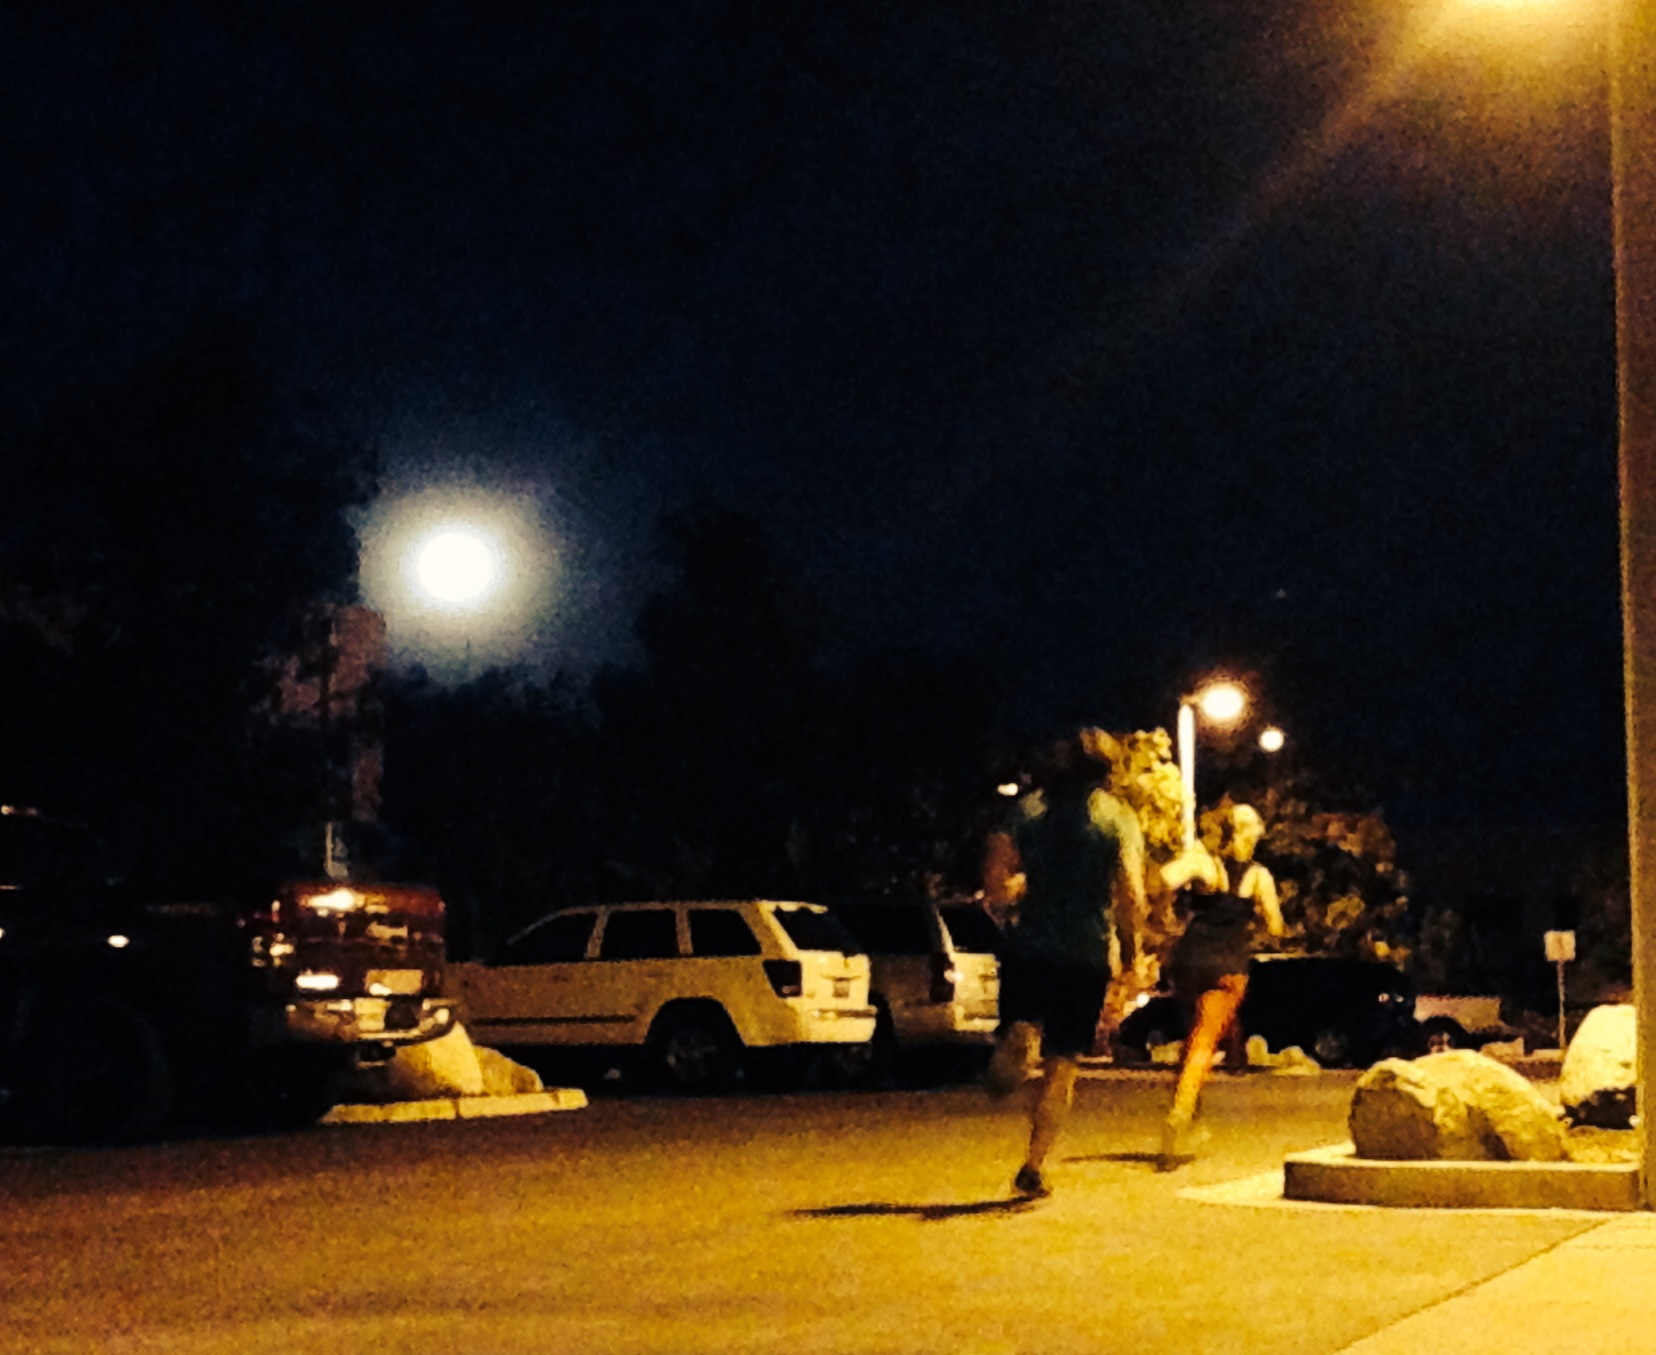 A full moon, 200 meter repeats and burpees…. doesn't get any better